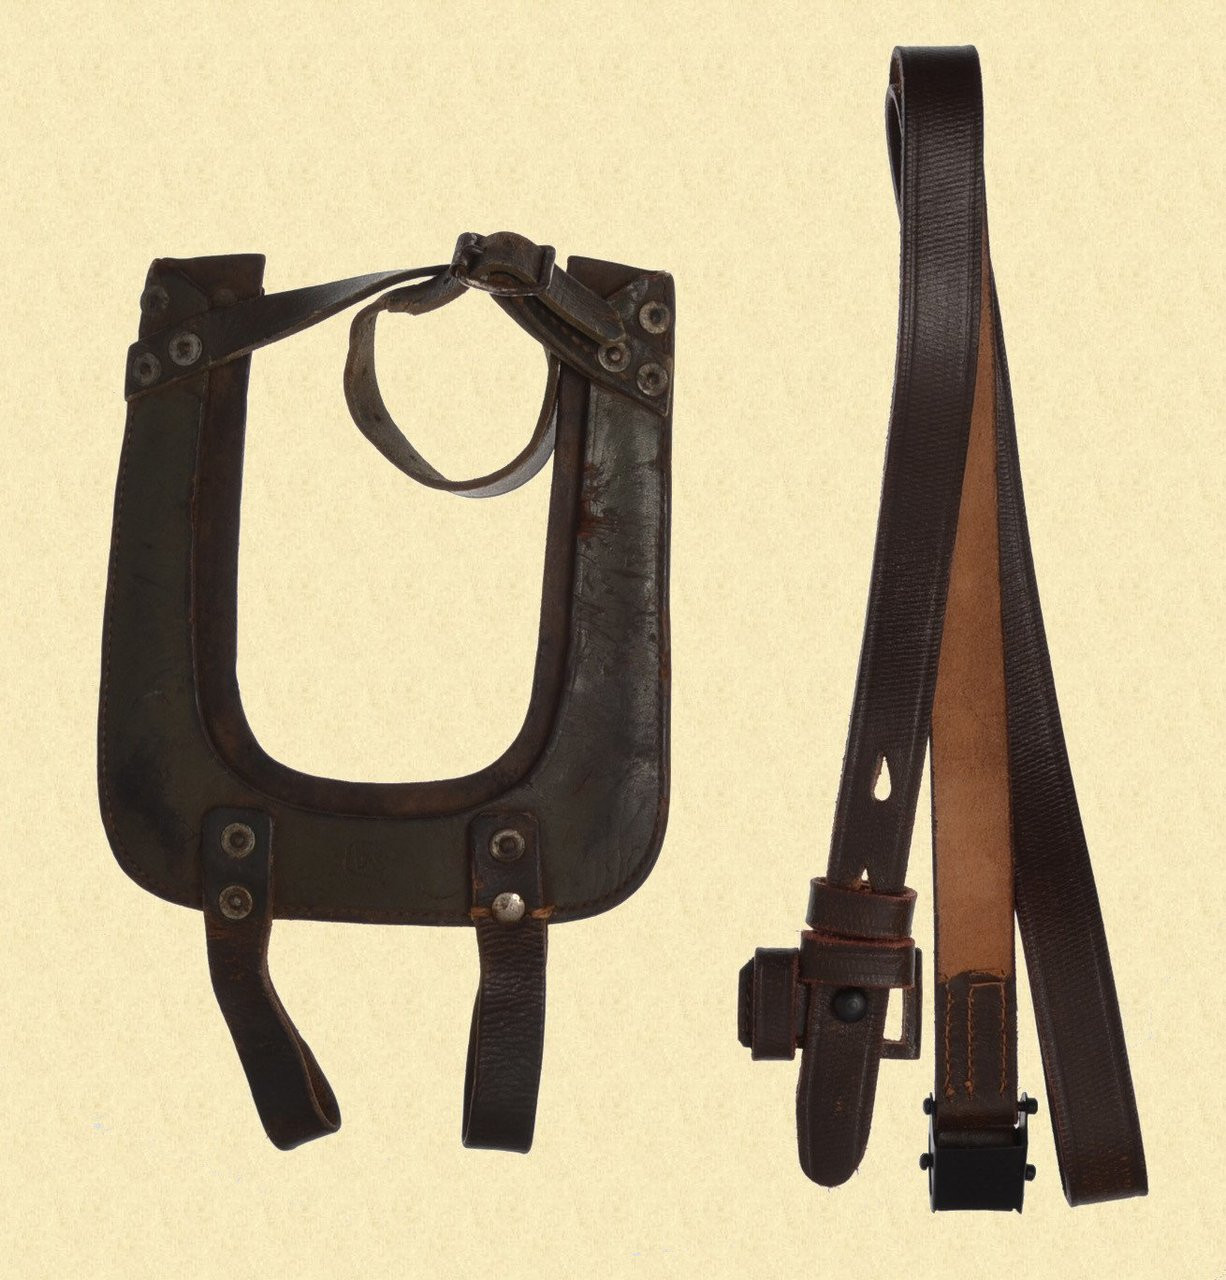 FINNISH ENTRENCHING TOOL CARRIER - C29193